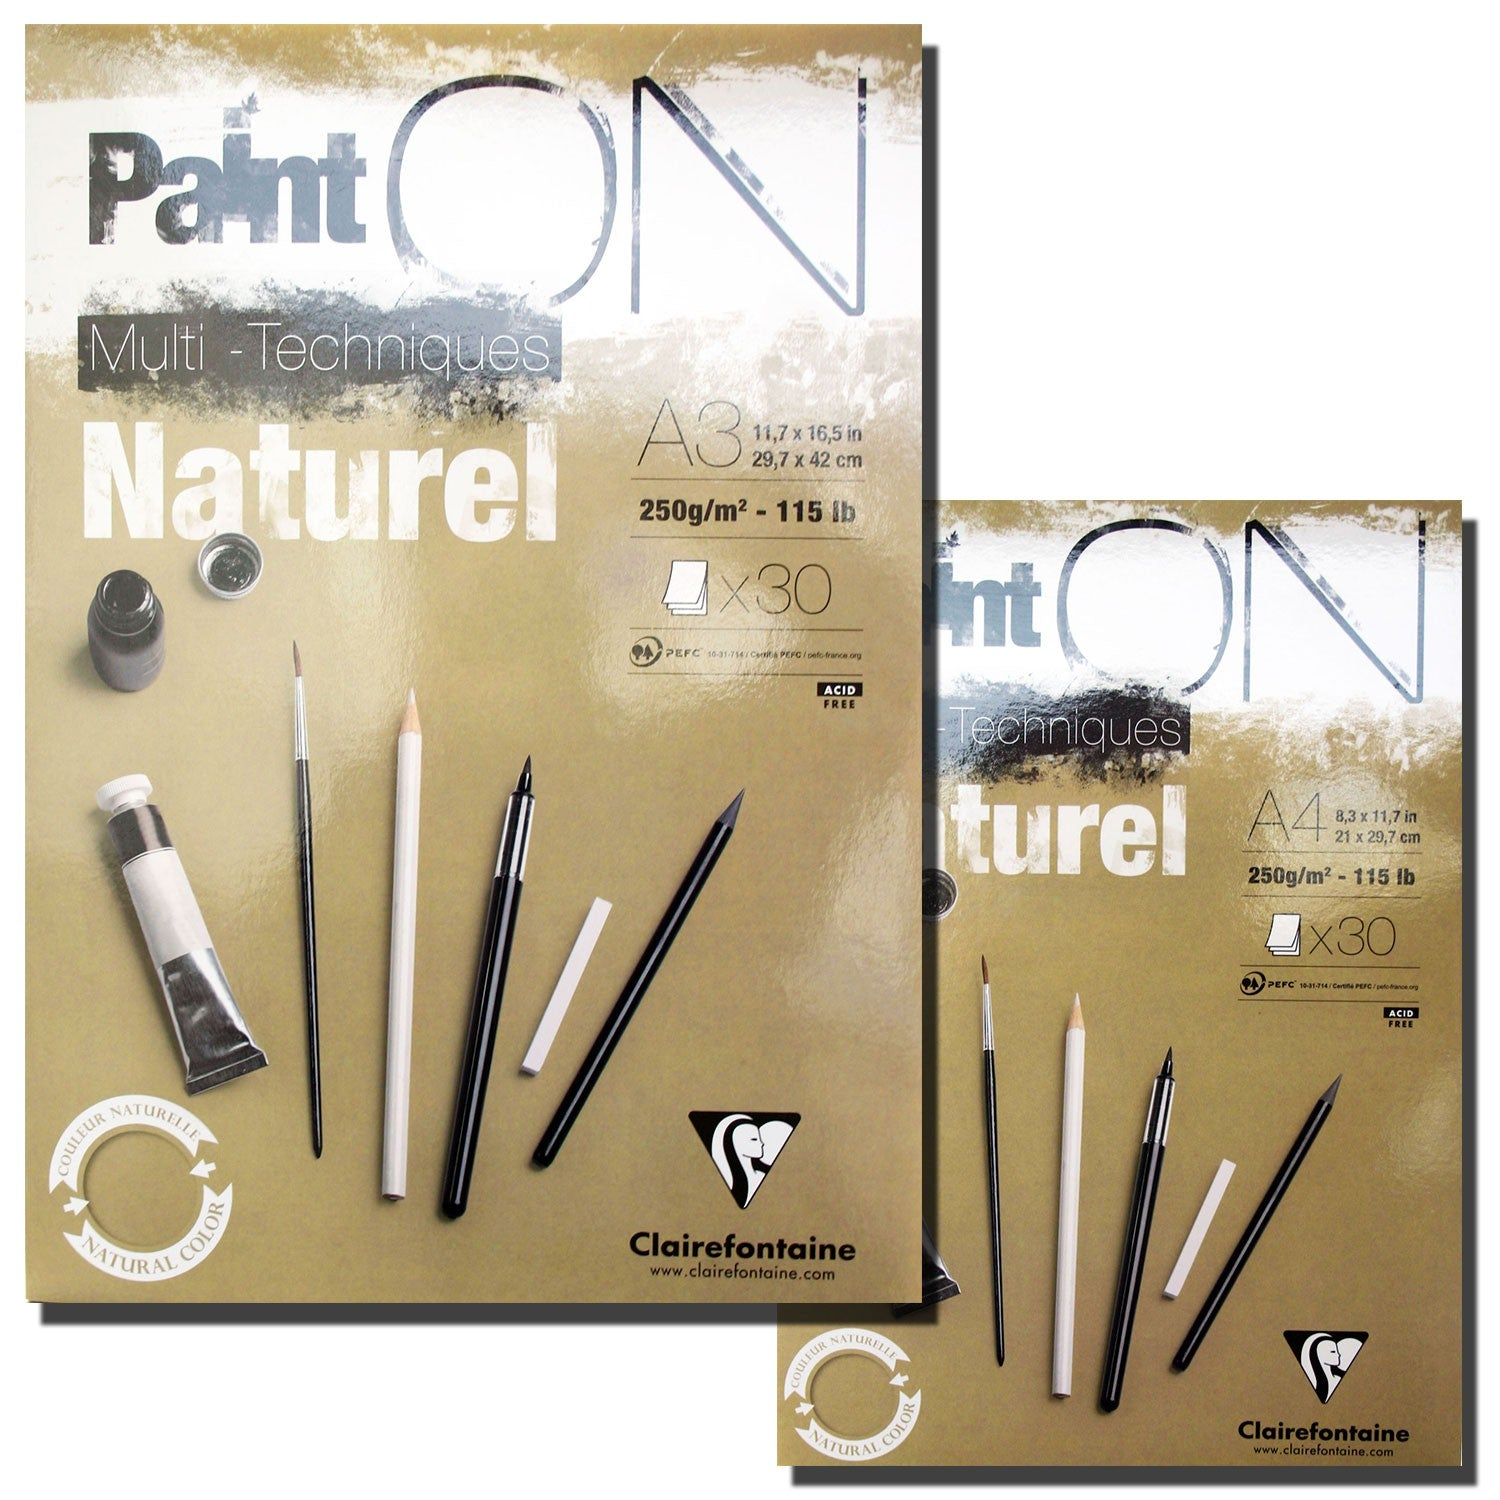 Paint On Multi-Techniques Naturel Pads